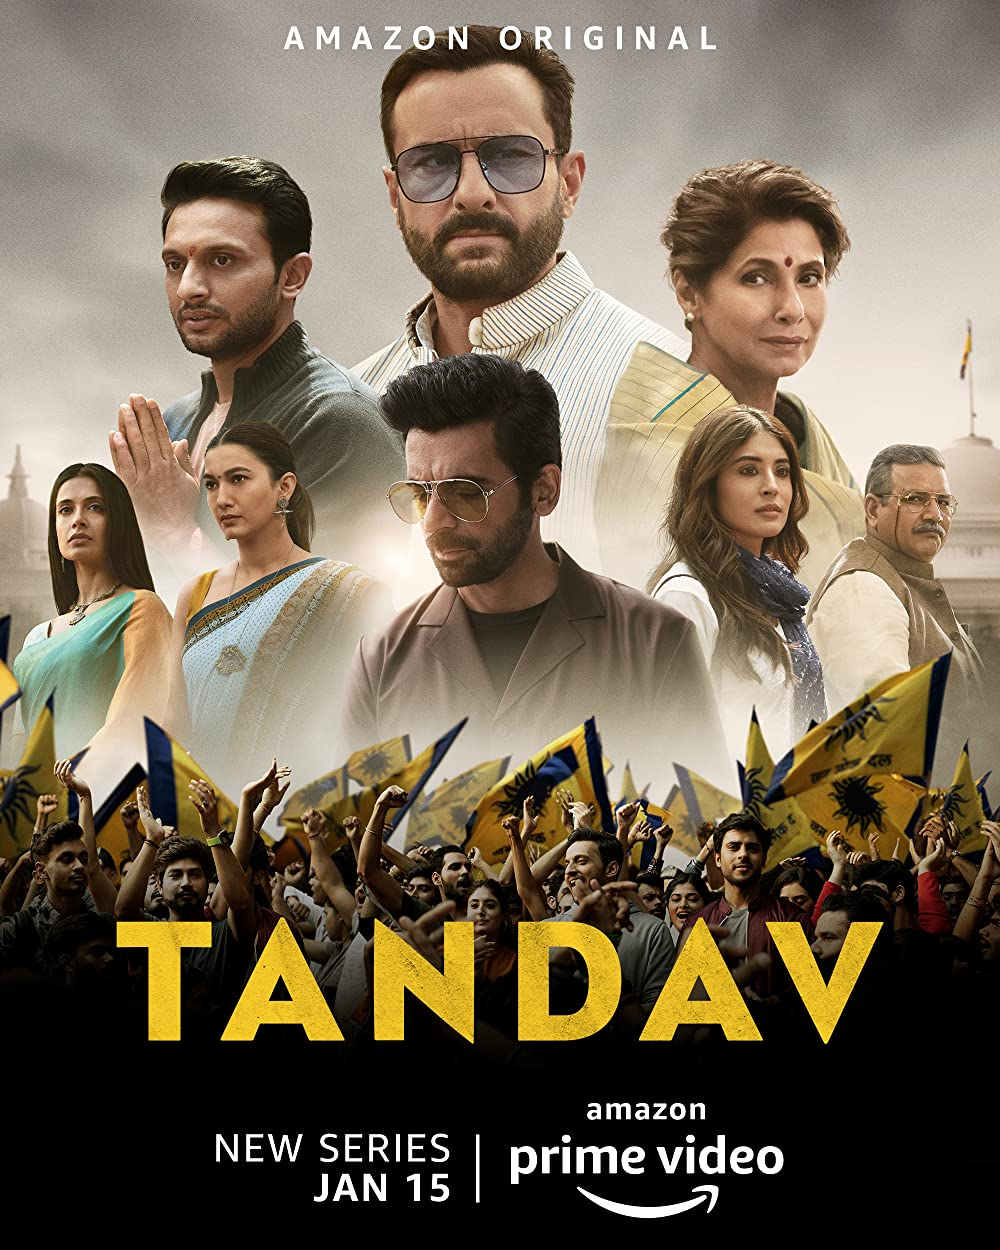 Tandav S01 2021 Hindi Amazon Original Web Series Official Trailer 1080p HDRip 70MB Download